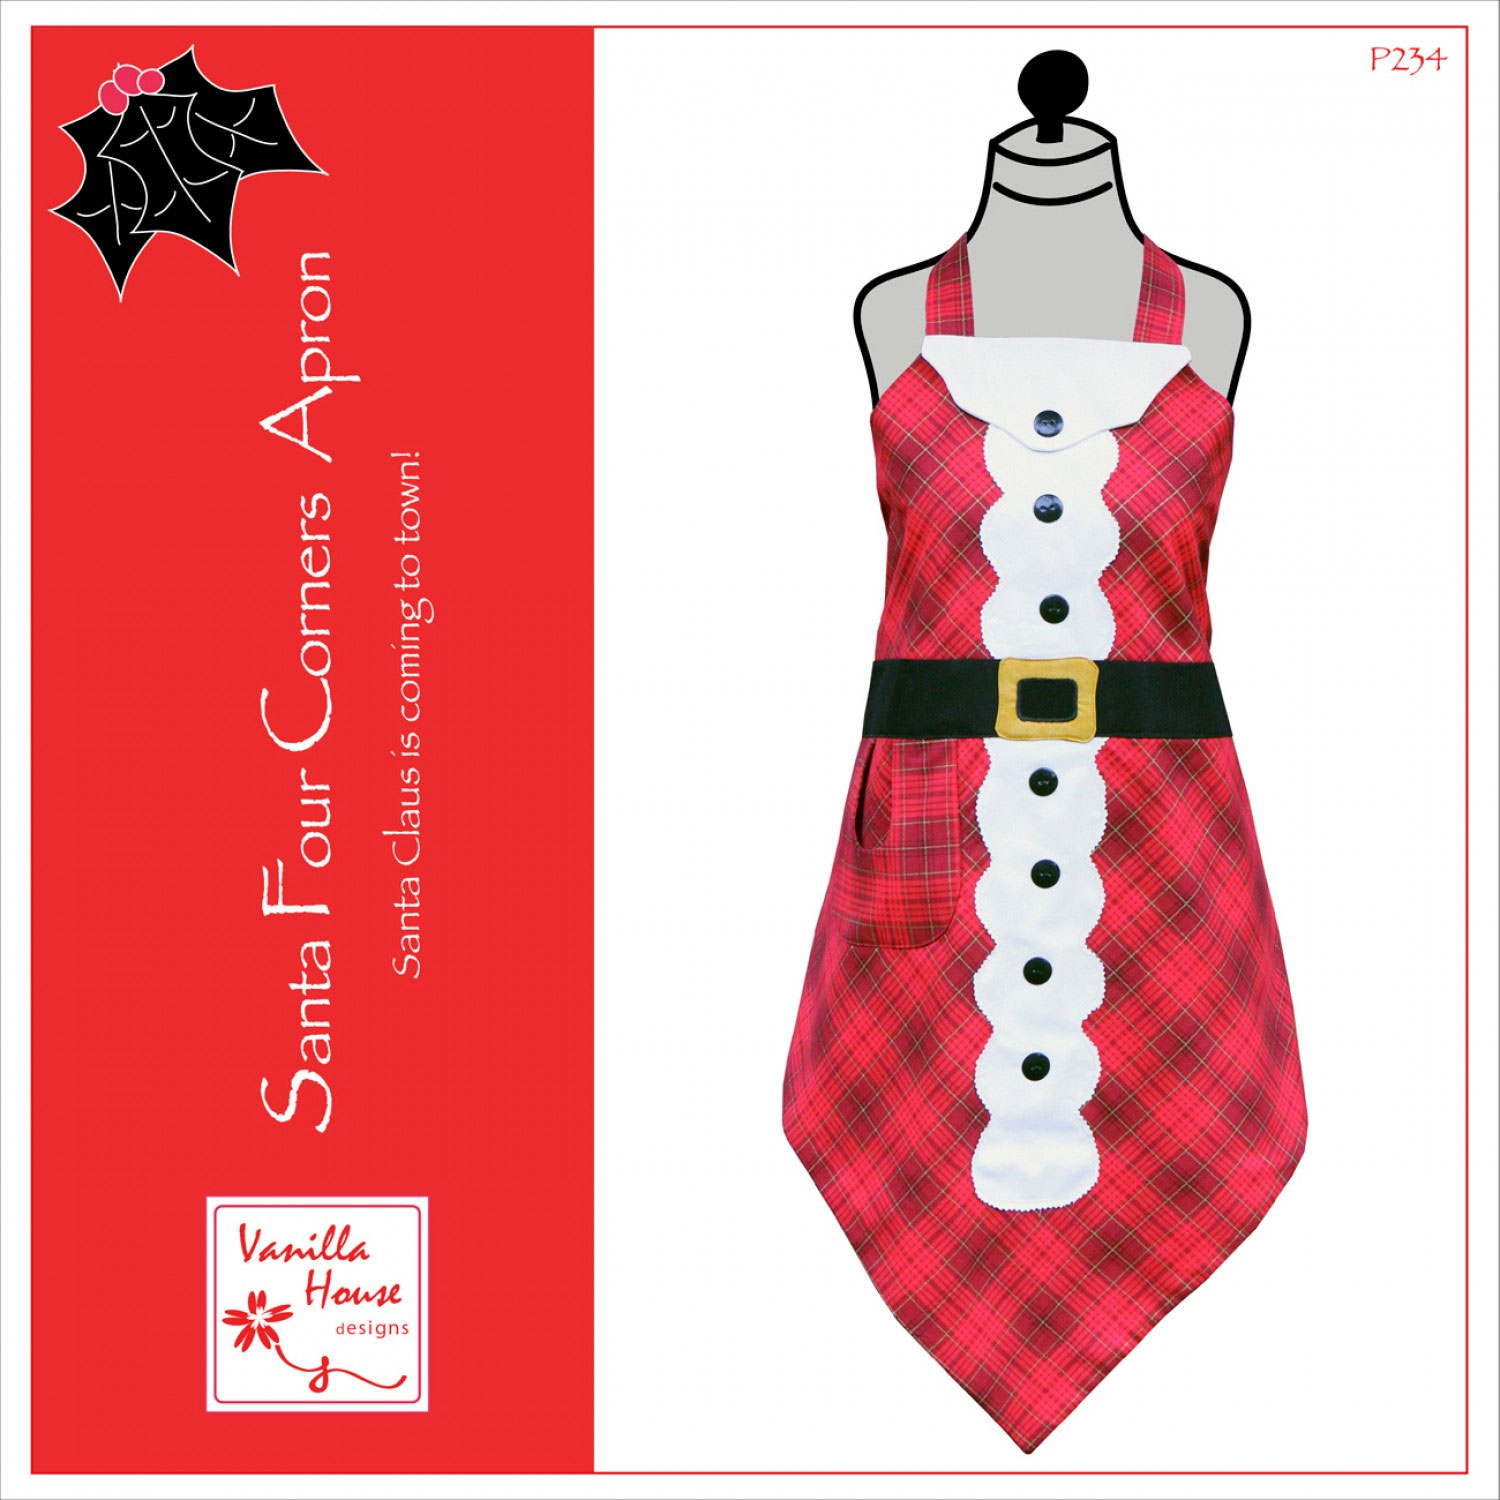 Santa-Four-Corners-Apron-sewing-pattern-Vanilla-House-Designs-front